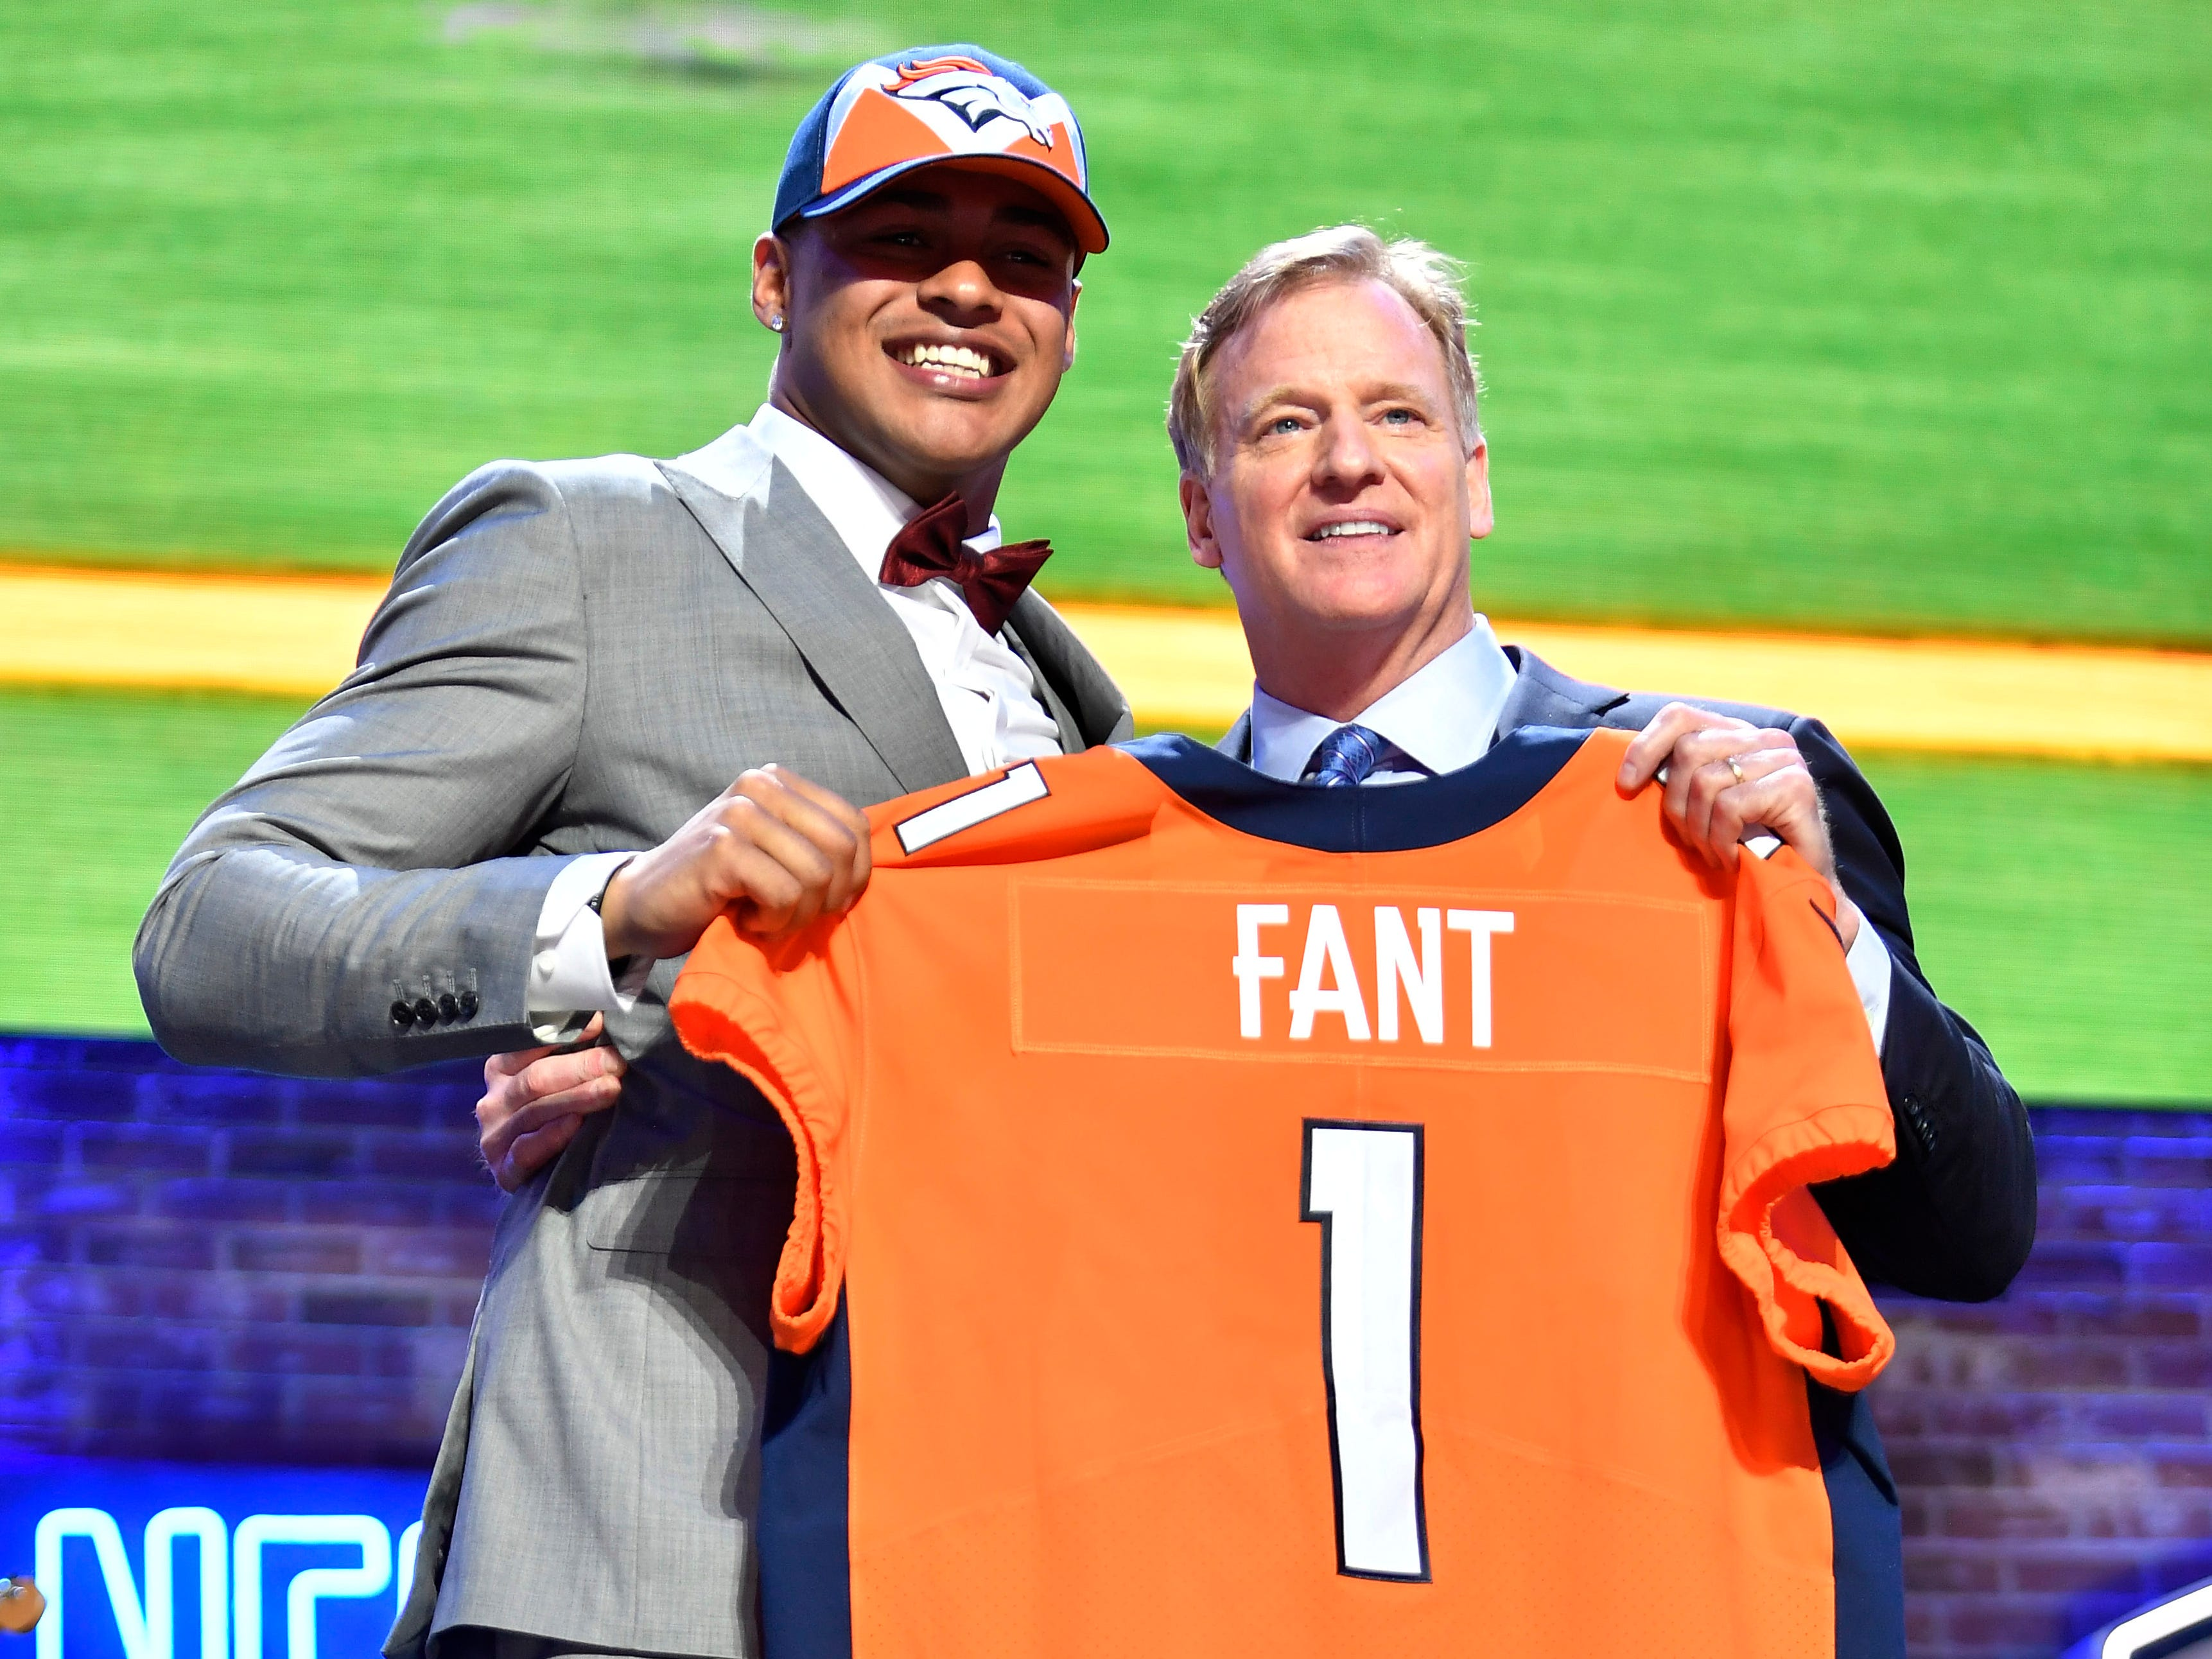 Noah Fant celebrates his pick by the Denver Broncos with NFL Commissioner Roger Goodell during the first round of the NFL Draft Thursday, April 25, 2019, in Nashville, Tenn.